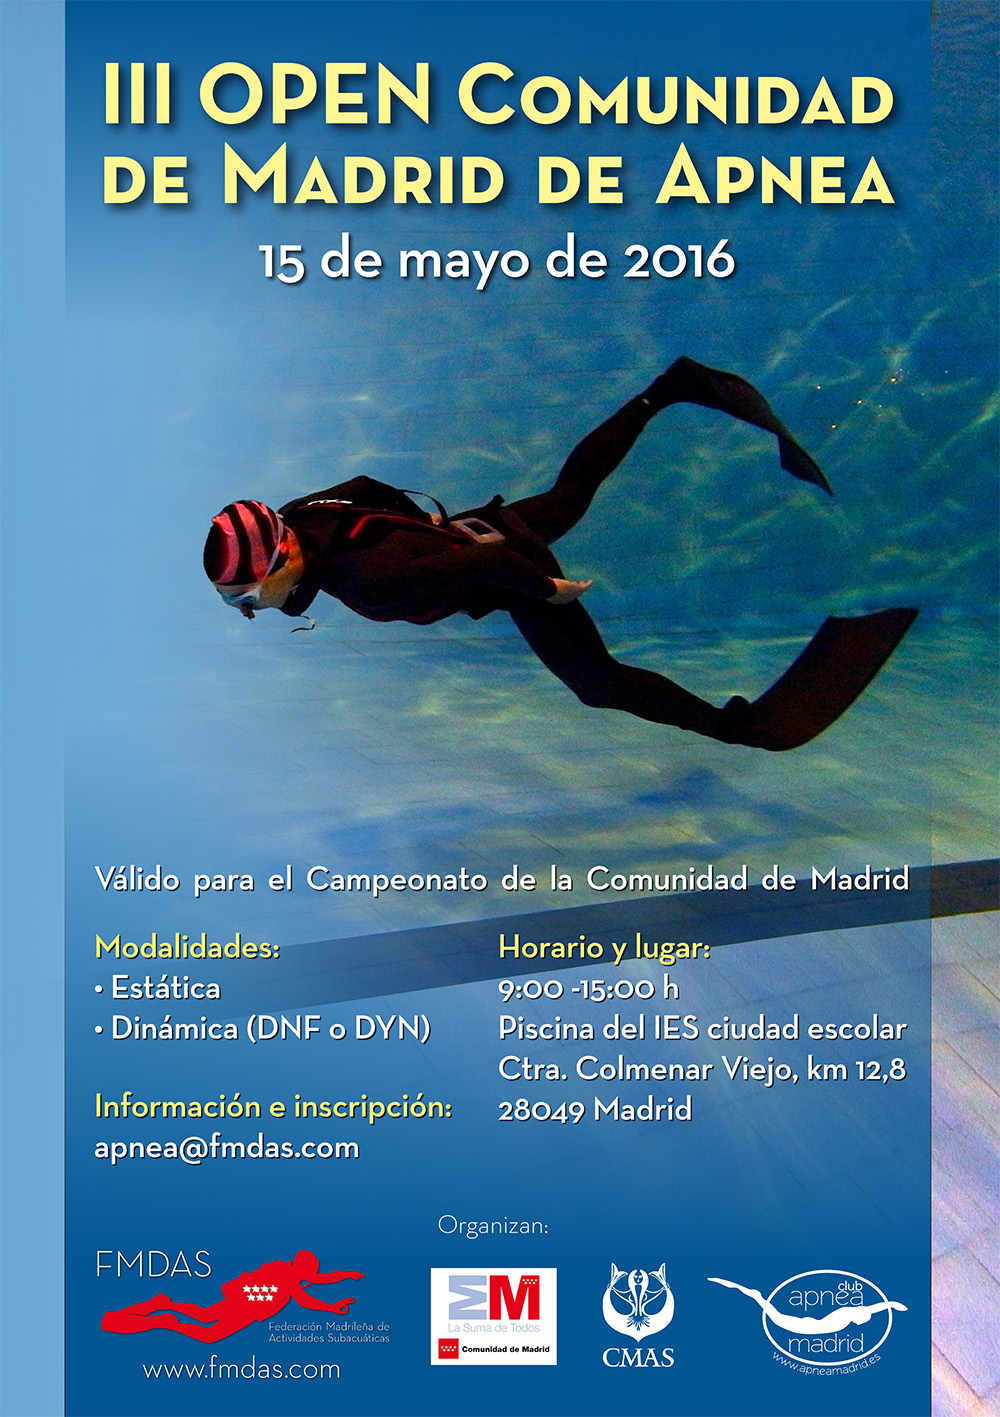 Club apnea madrid open comunidad de madrid 2016 for Piscinas comunidad de madrid 2016